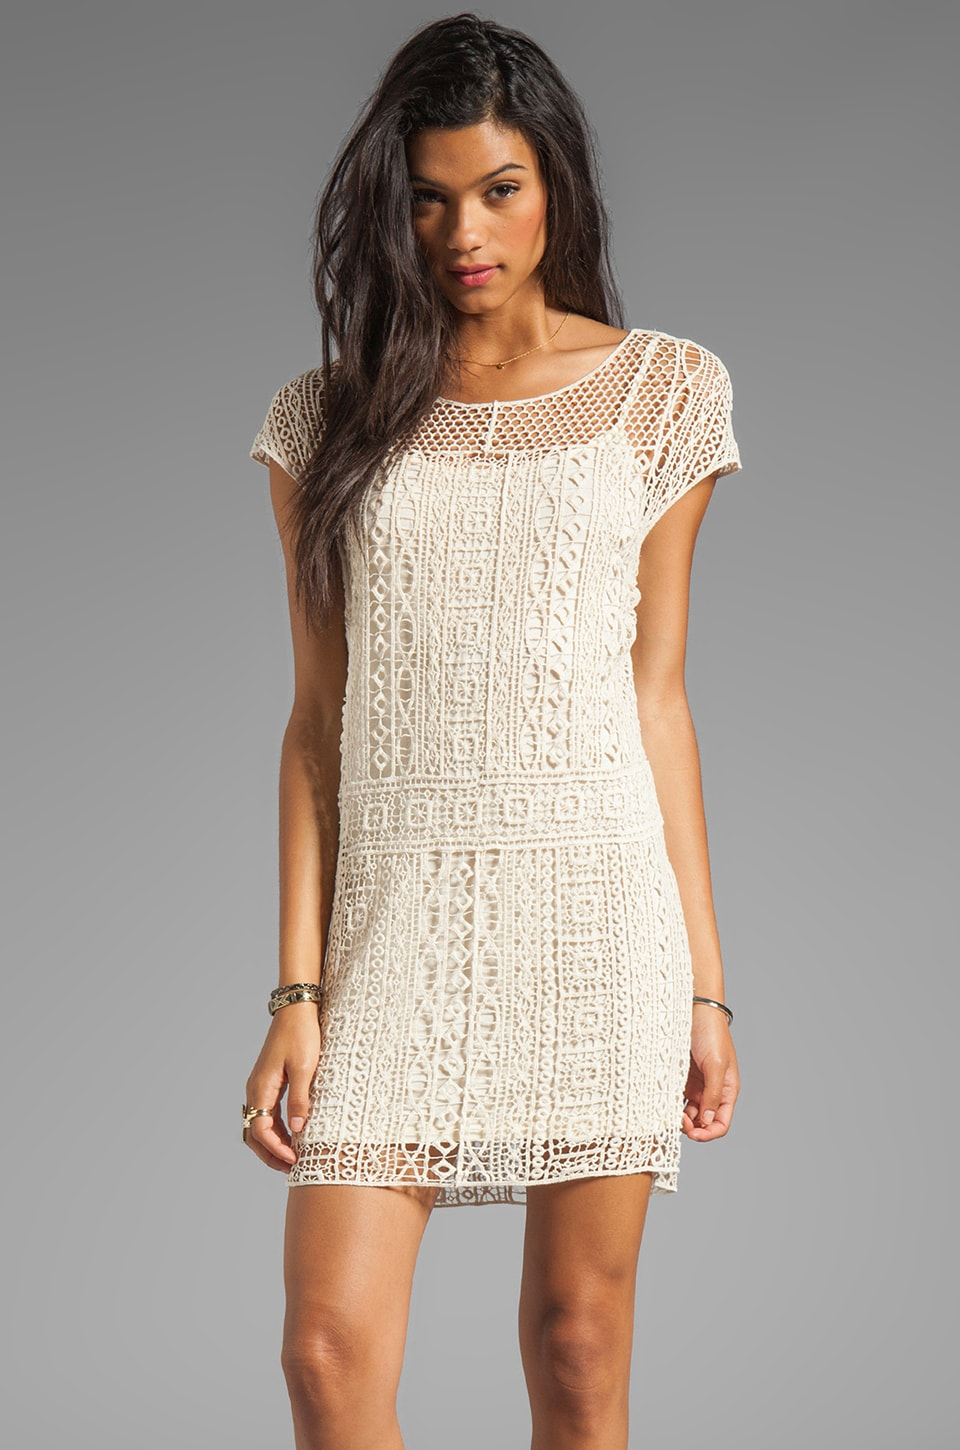 Ella Moss Hailee Crochet Dress in Natural